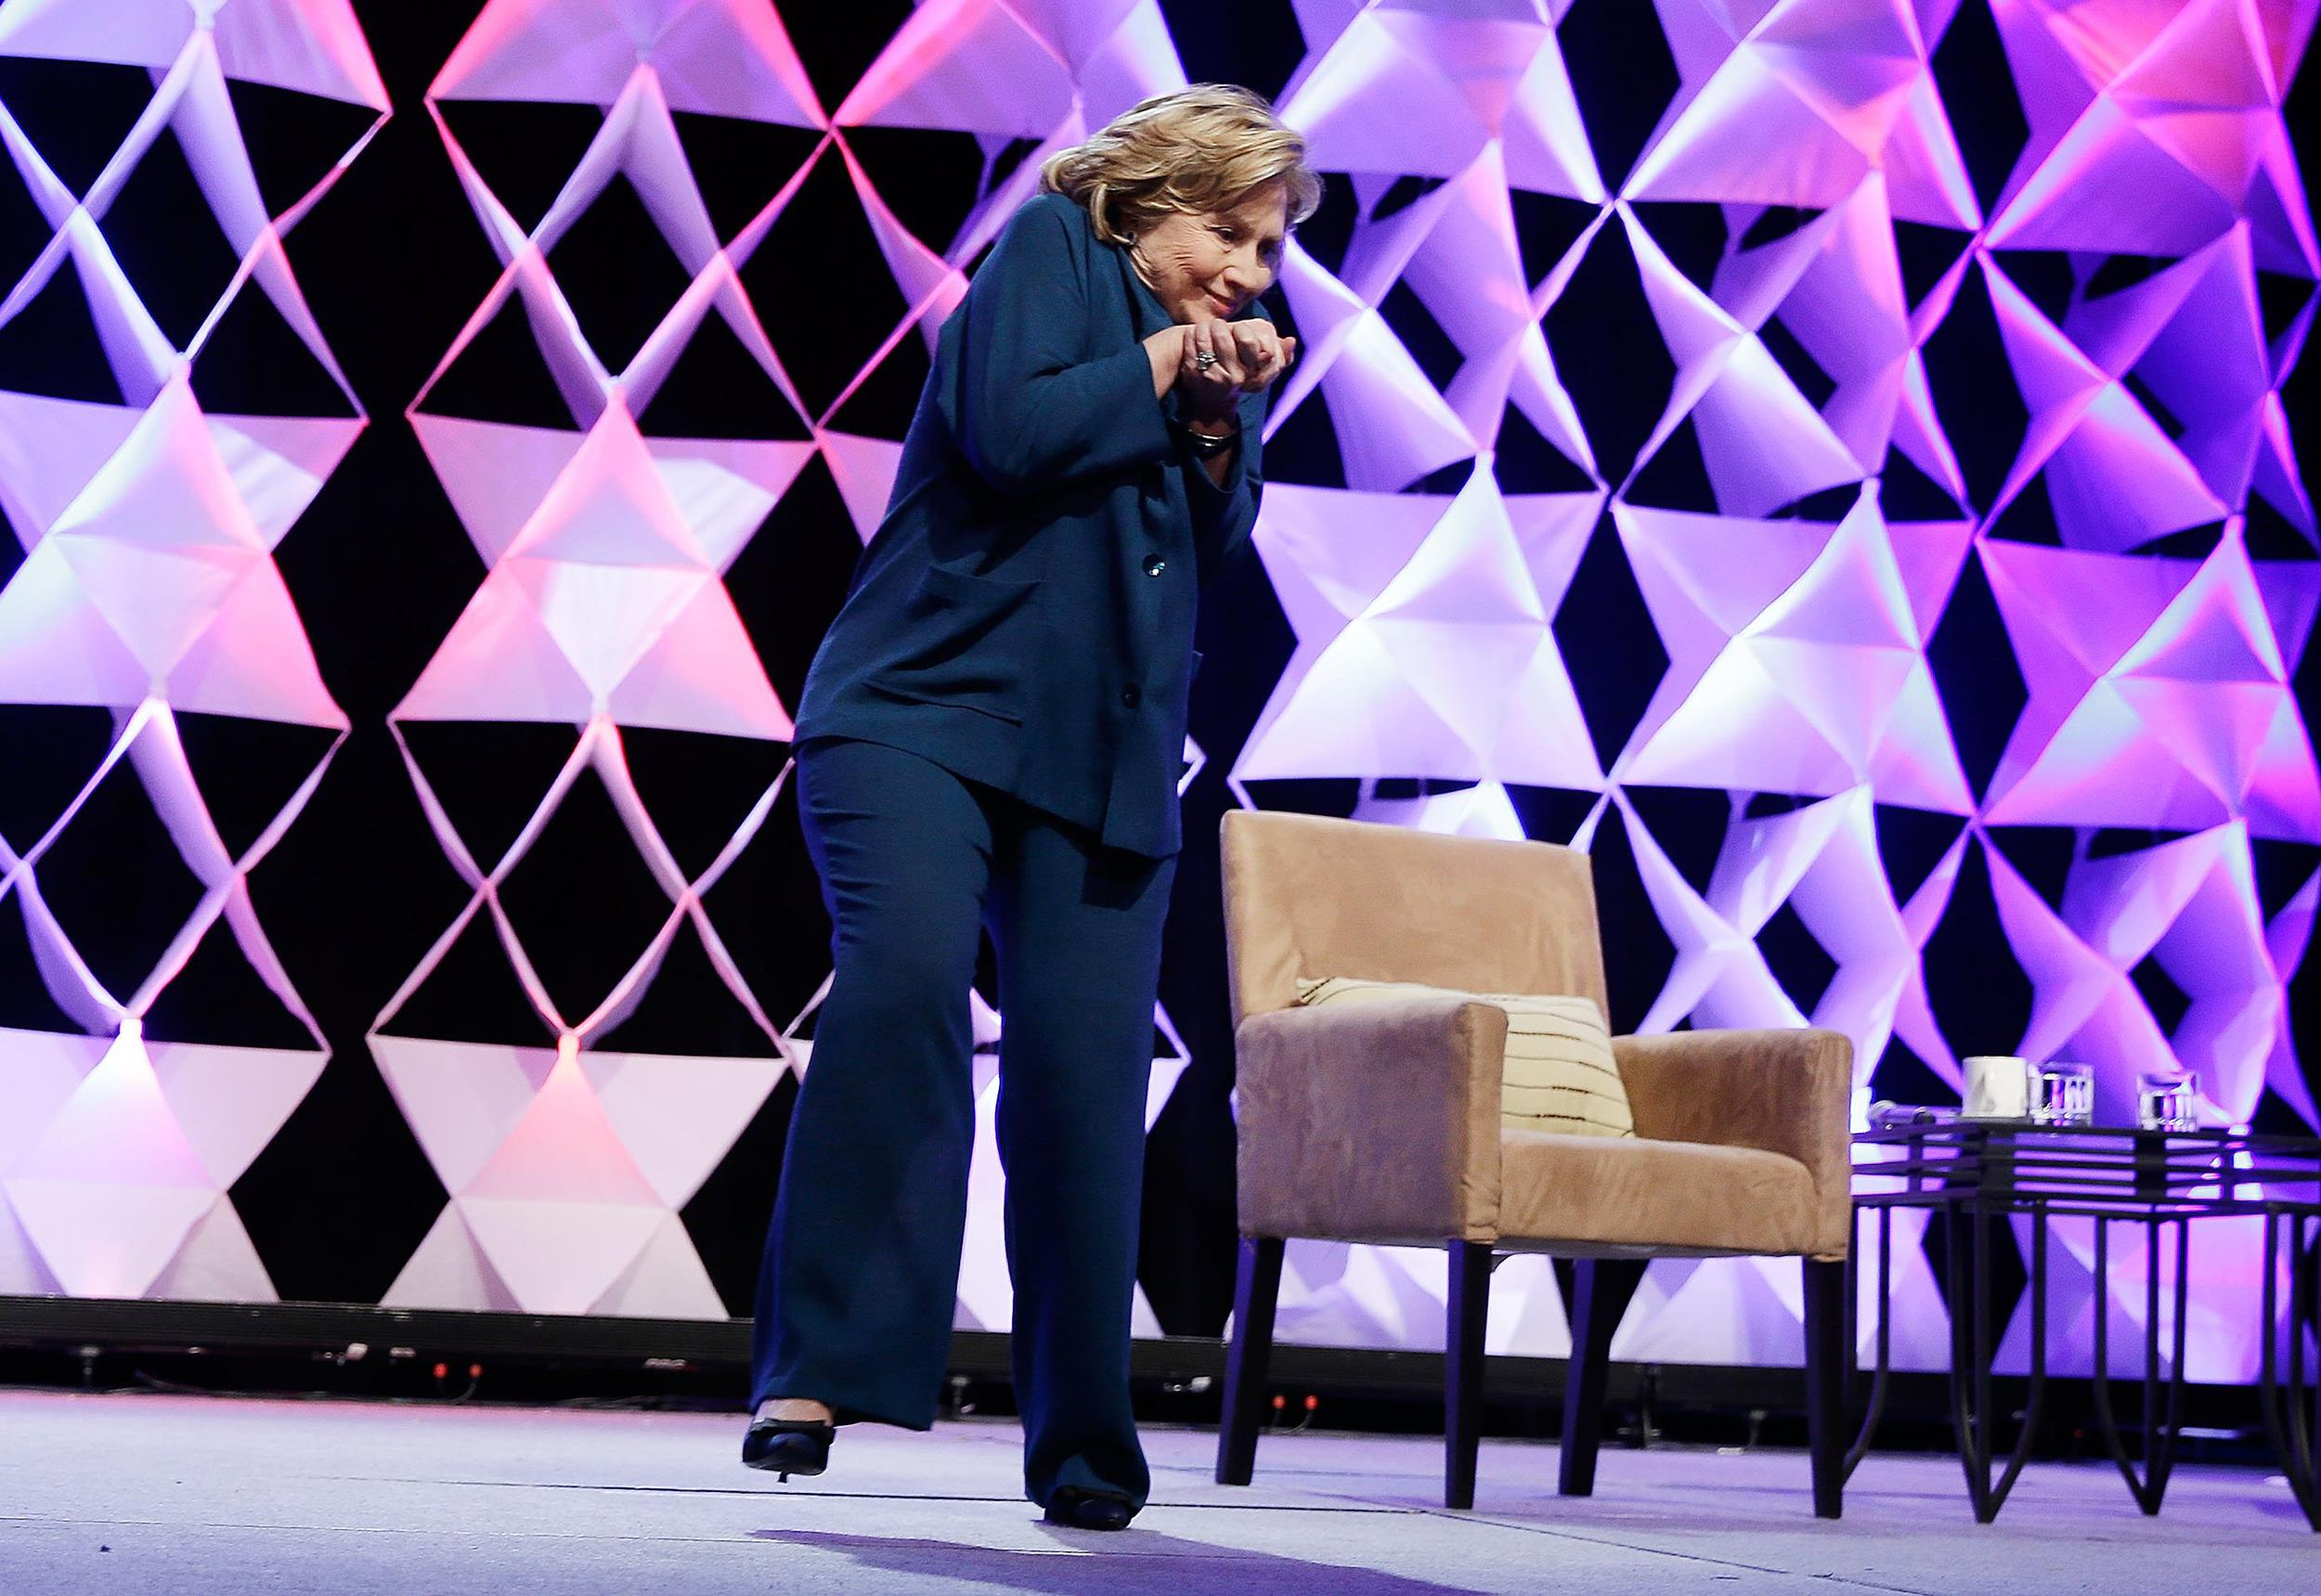 Image:  Former Secretary of State Hillary Clinton ducks after a woman threw an object toward her